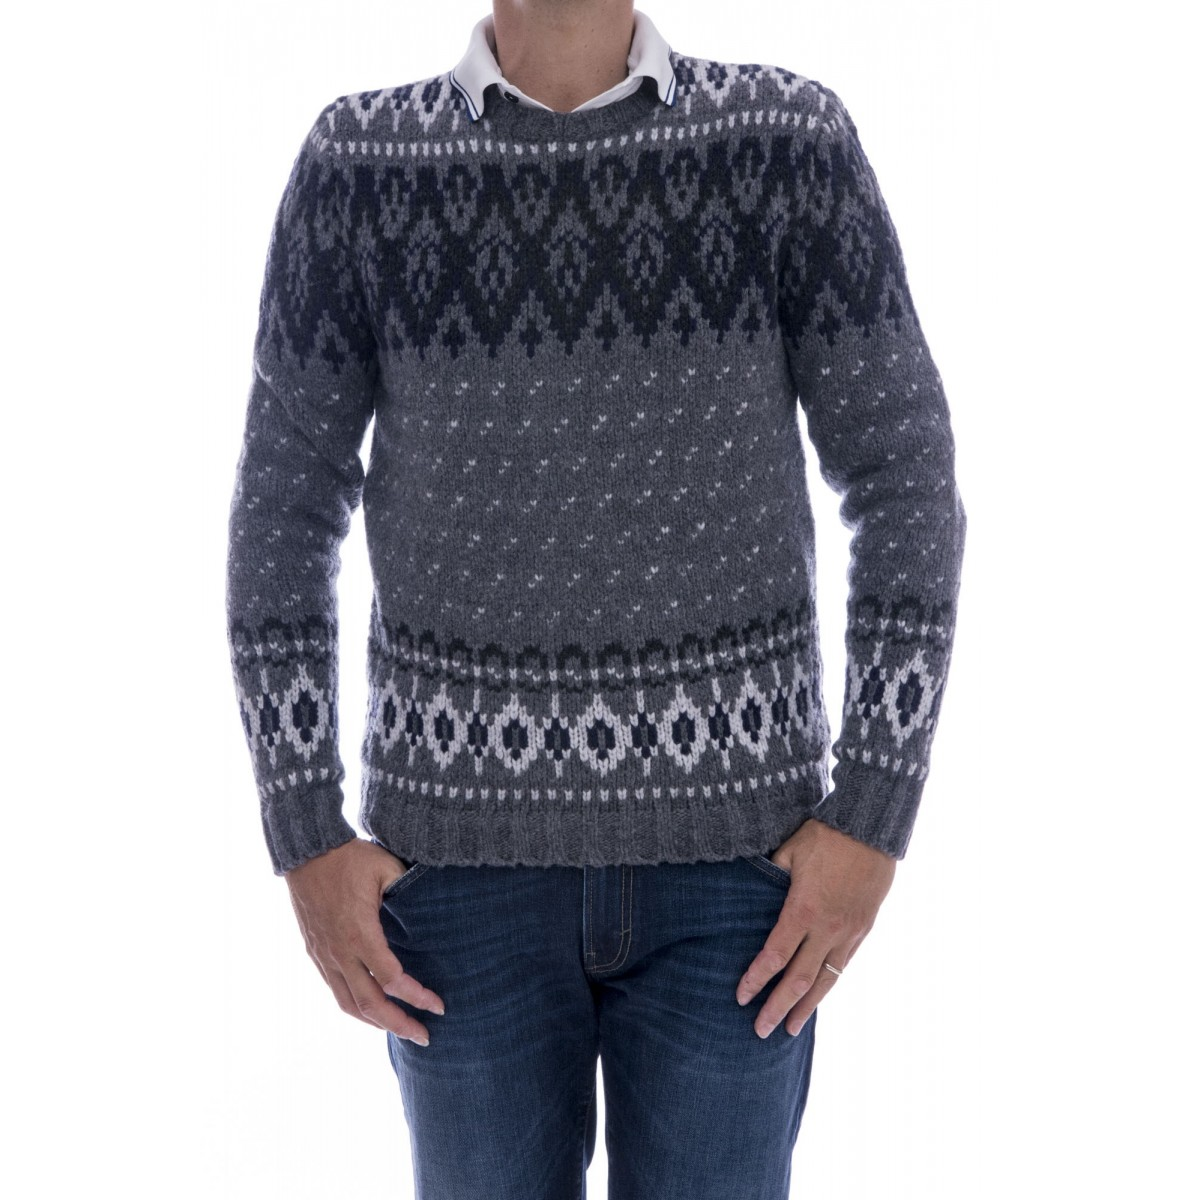 Piumino Woolrich - Wo mag1683 maglia norvegese made in italy